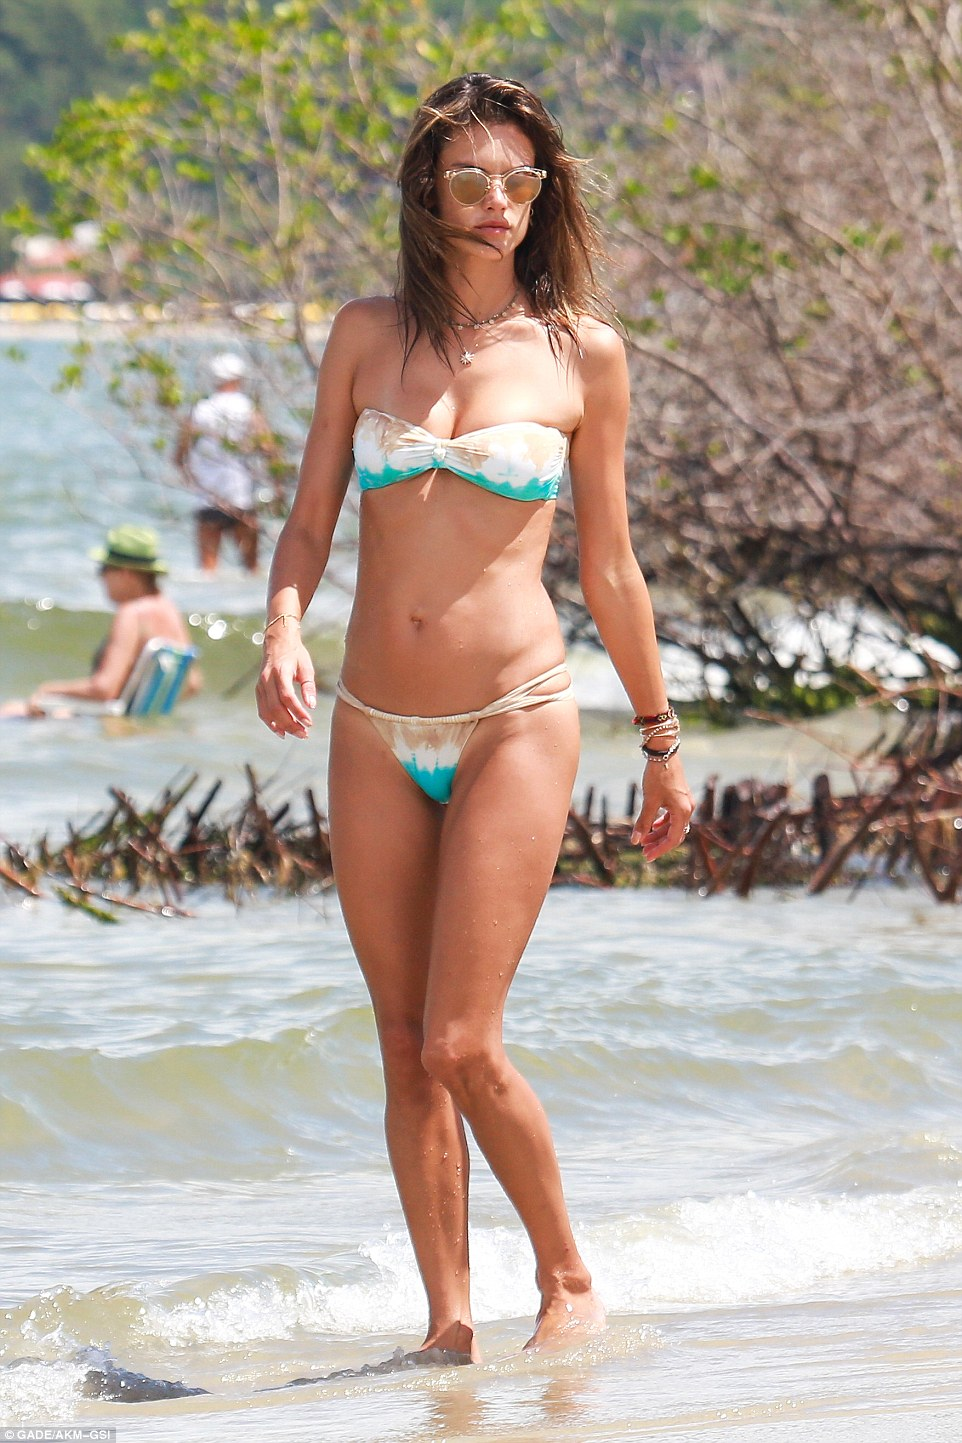 Blingy:And she wore plenty of jewelry as she took her ocean dip. The star had on several beaded and leather bracelets as well as a necklace that had a star pendant